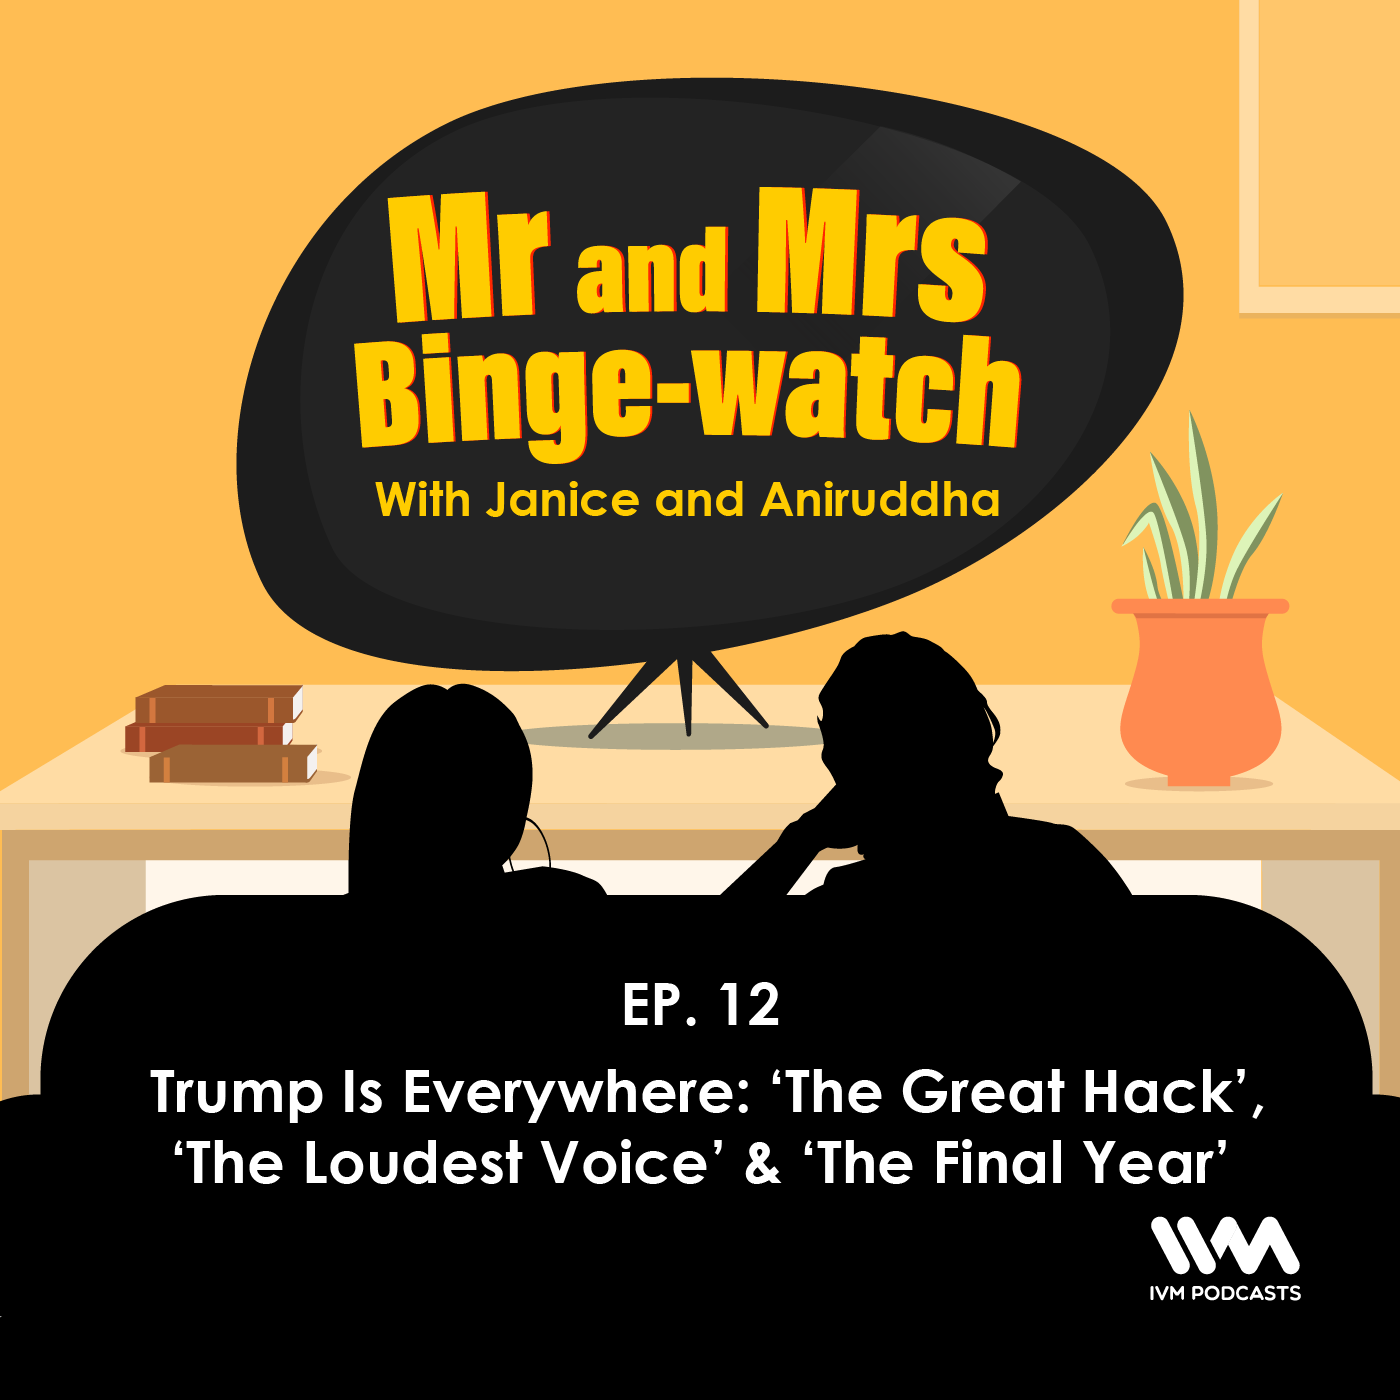 Ep. 12: Trump Is Everywhere: 'The Great Hack', 'The Loudest Voice' & 'The Final Year'